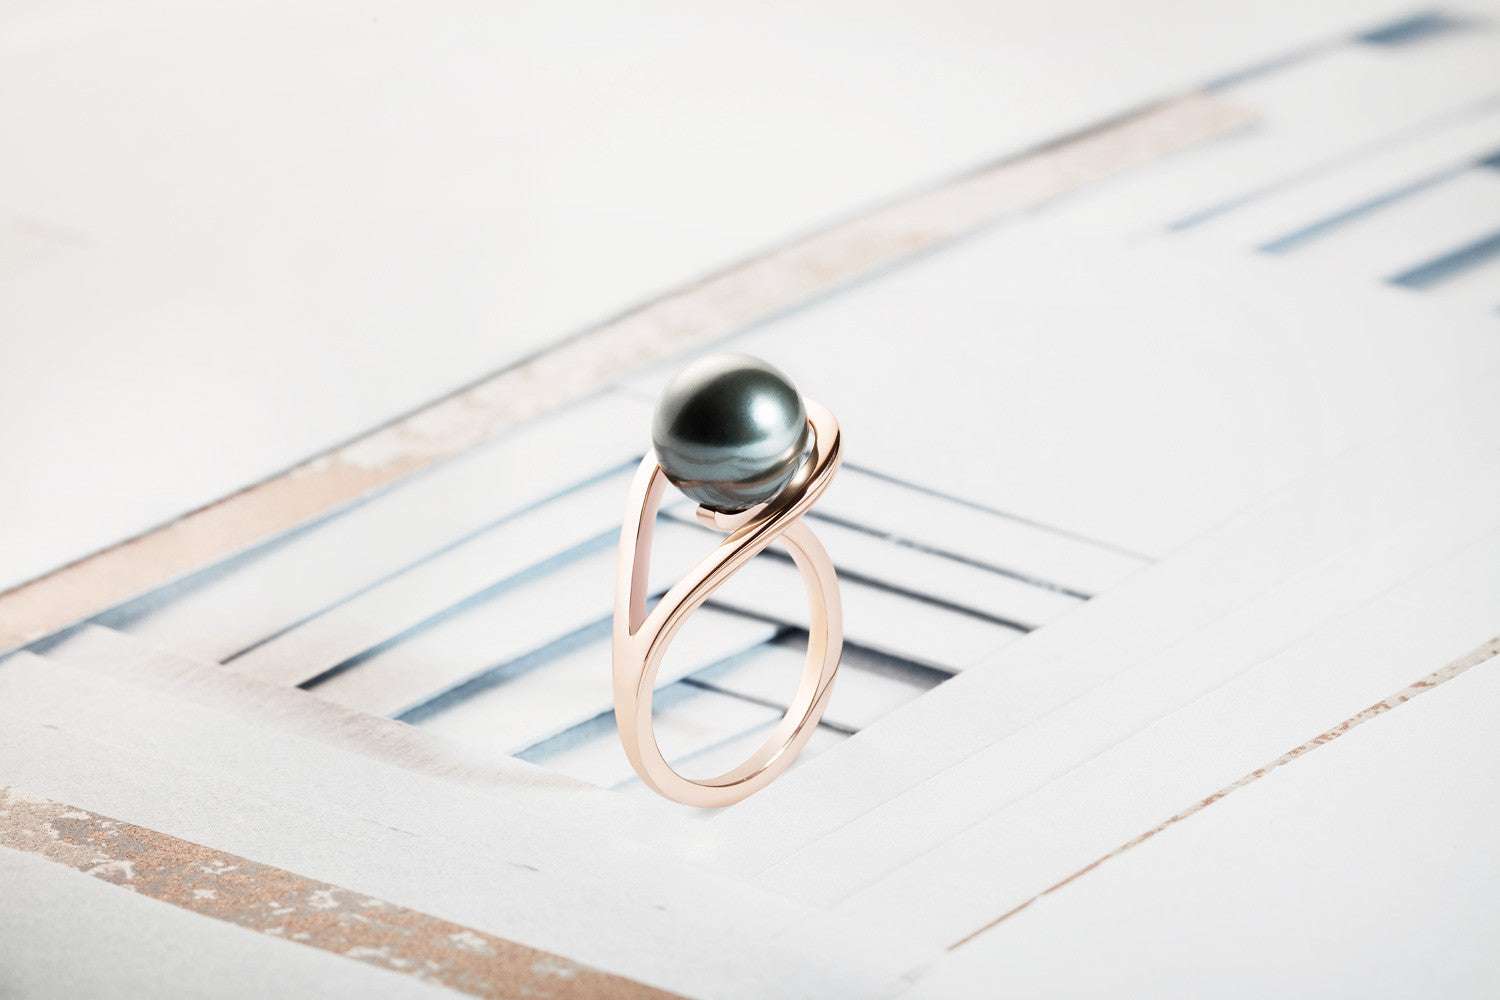 Rose Gold ring, grey pearl, geometric, unique British design, minimalist